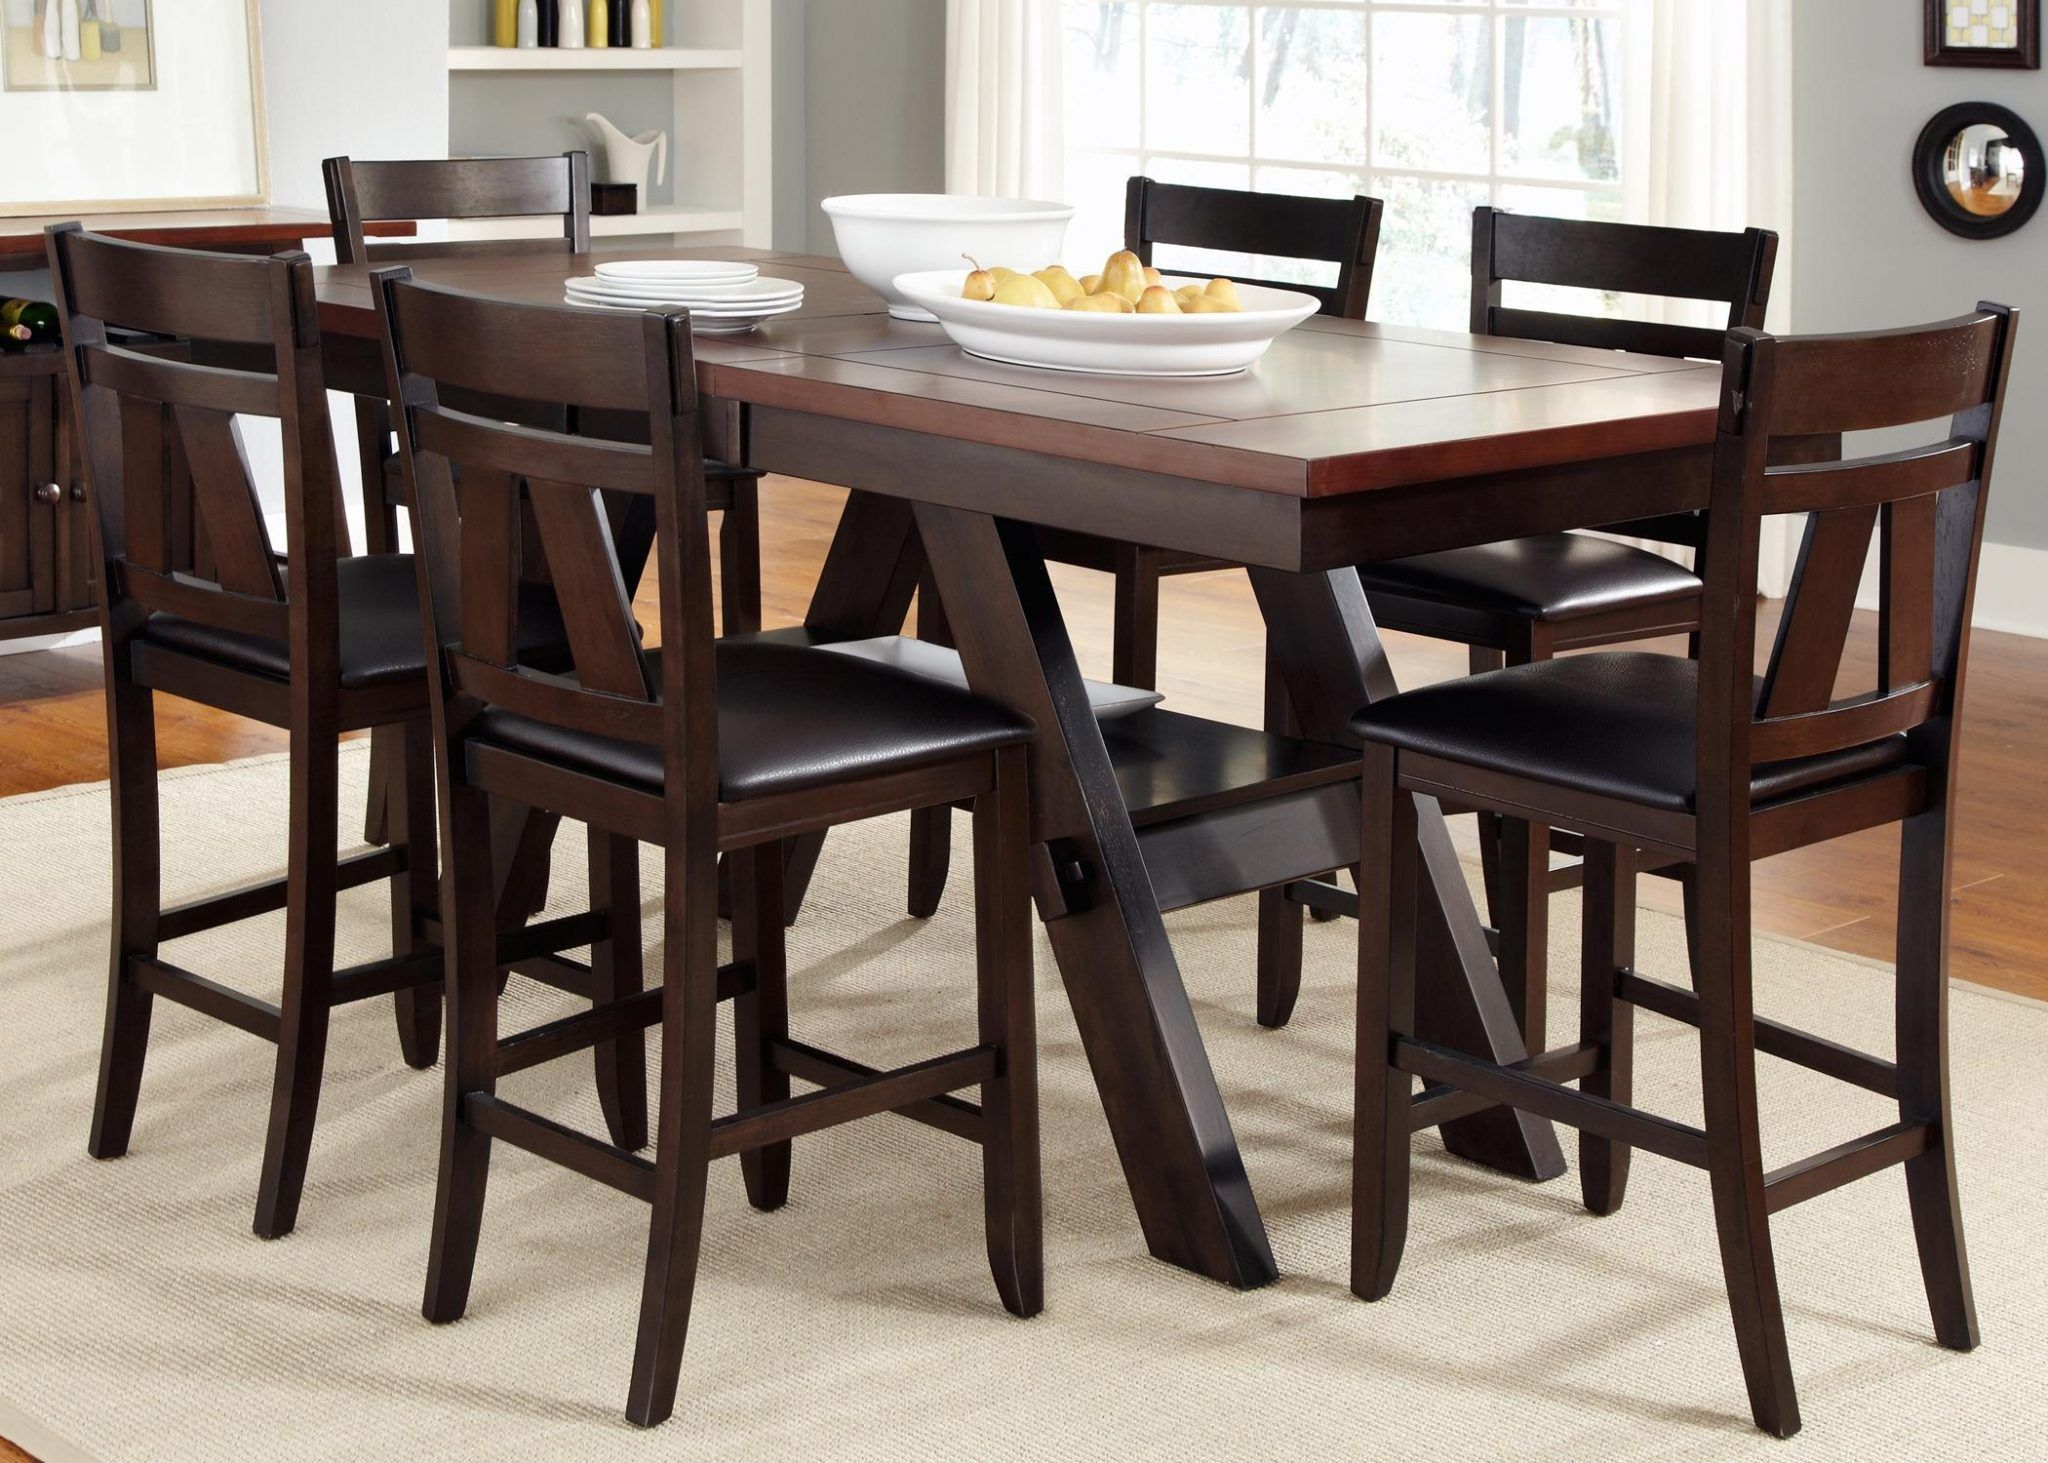 Pin On Tuscan Vineyard Kitchen, High Dining Room Tables